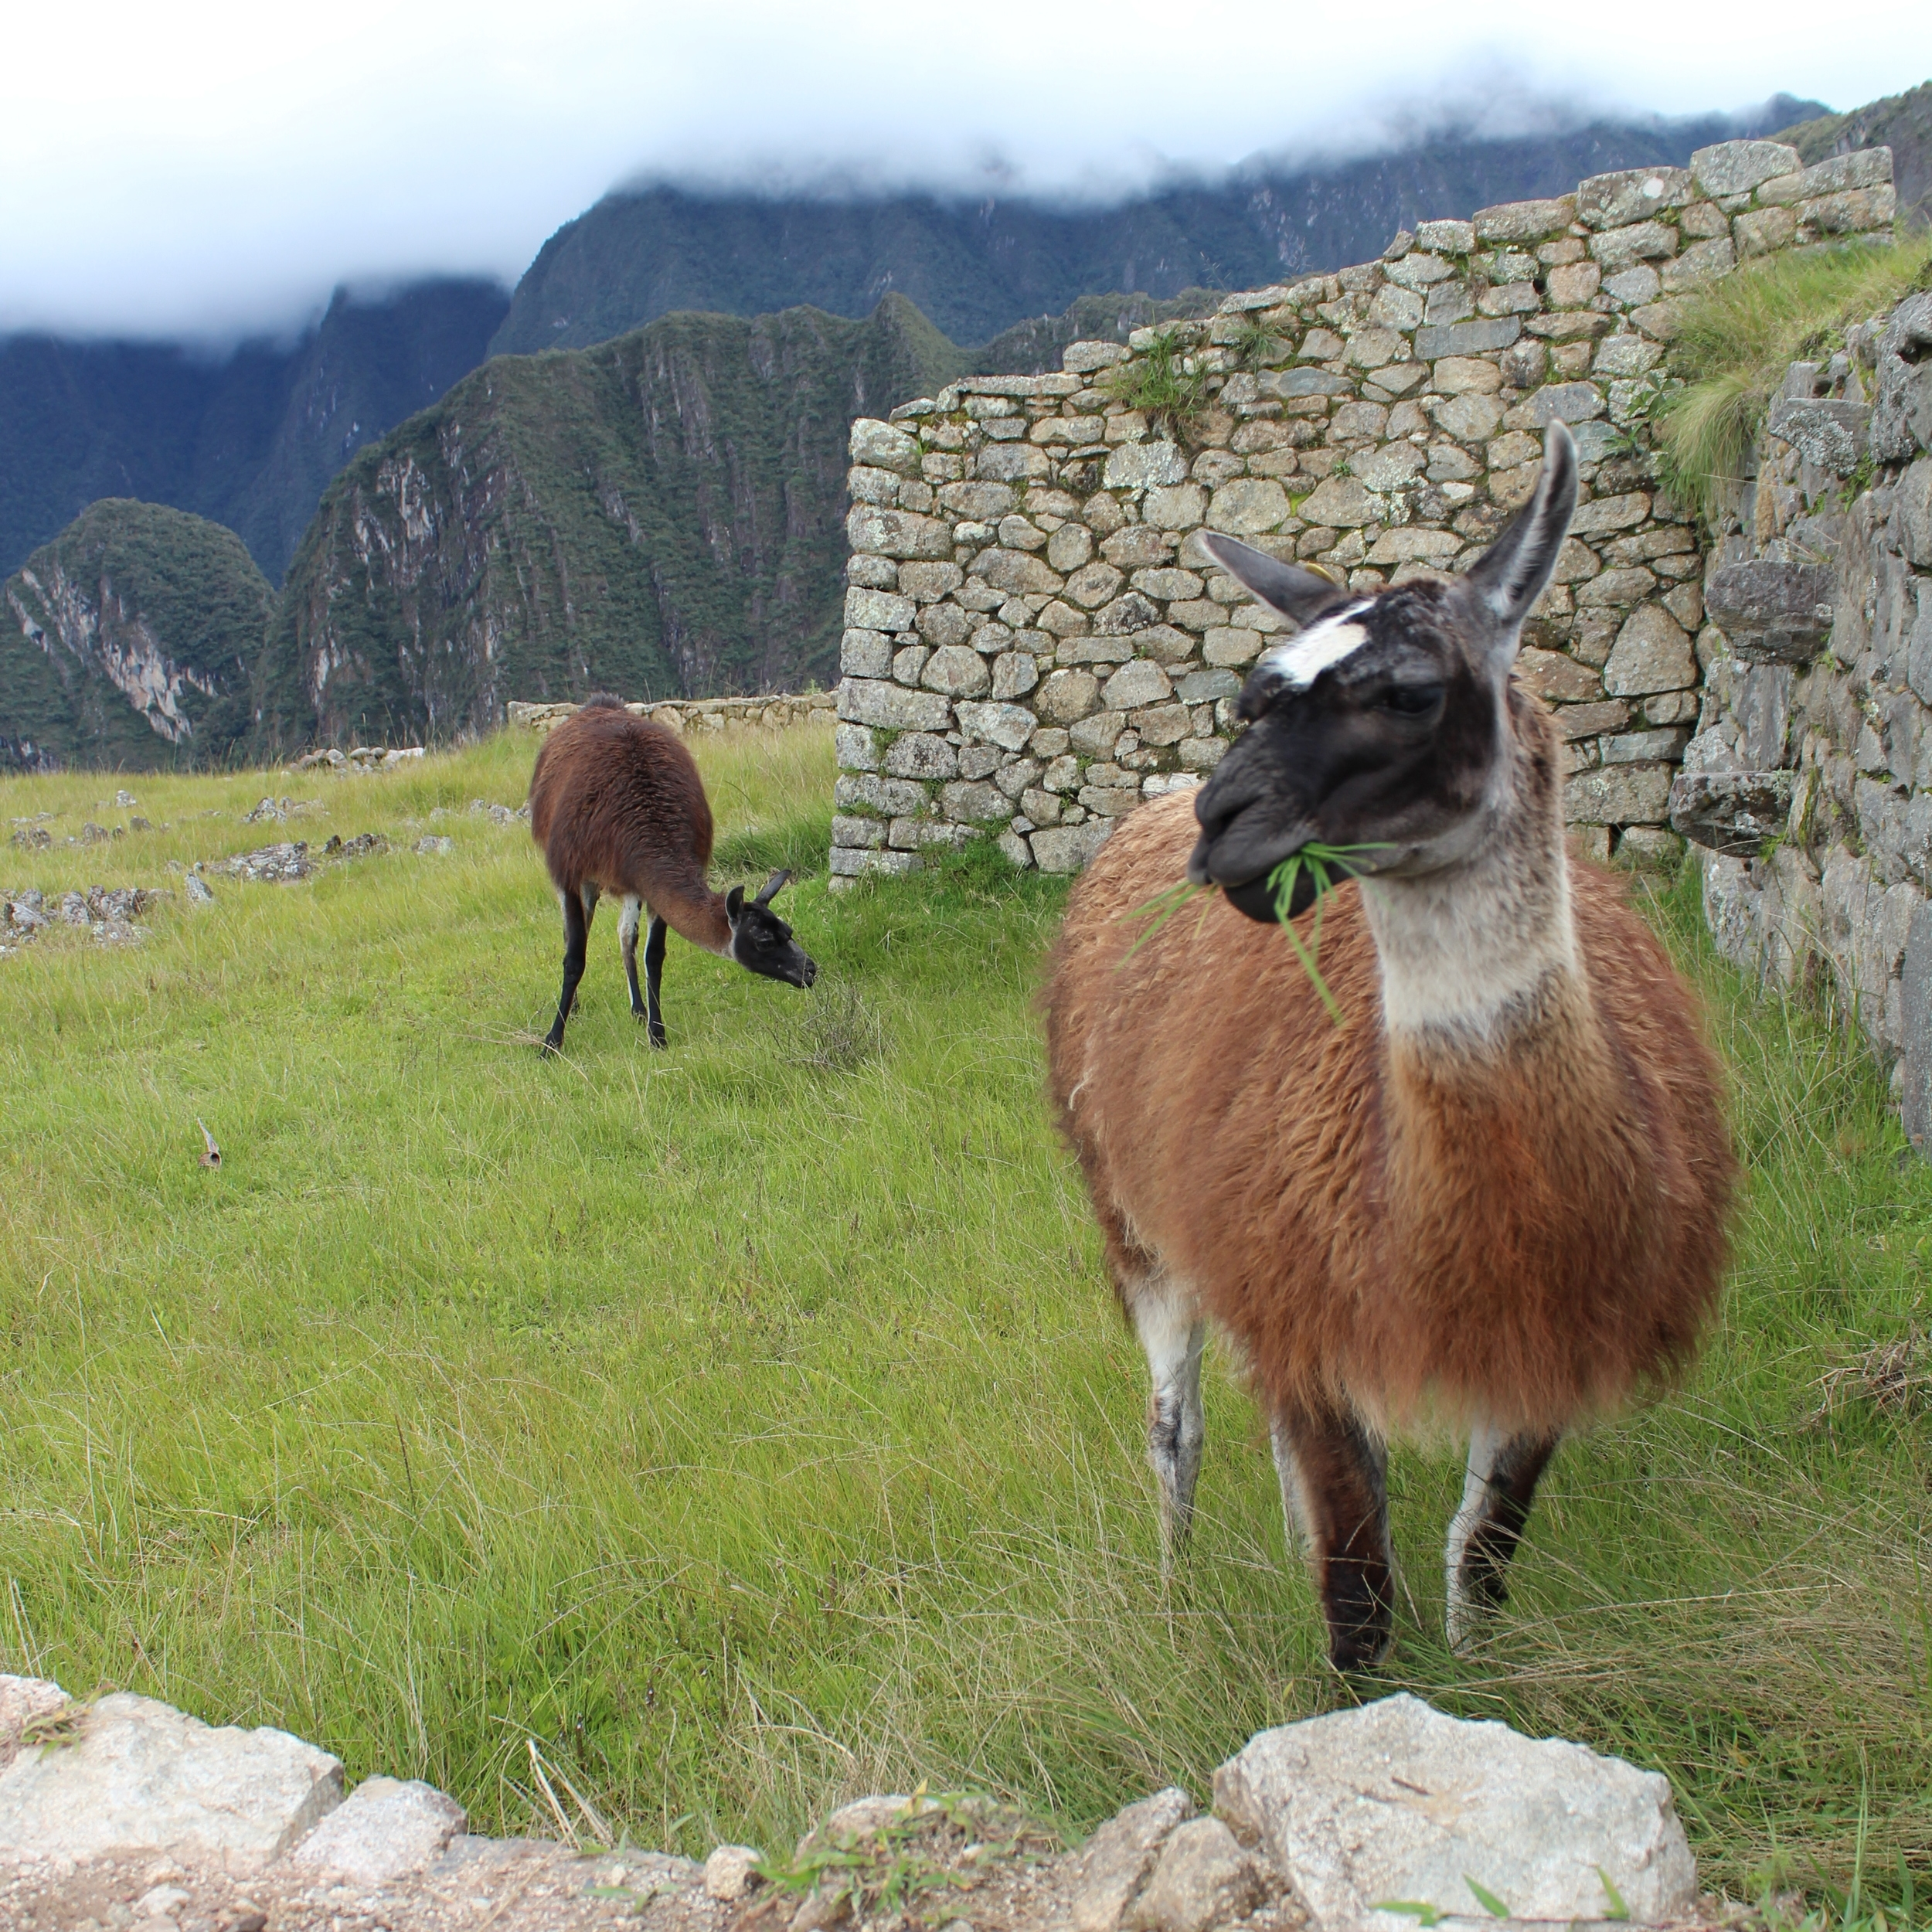 The Andean camelids live in the high altitude of the mountains. Photo: Javier Vélez Arocho